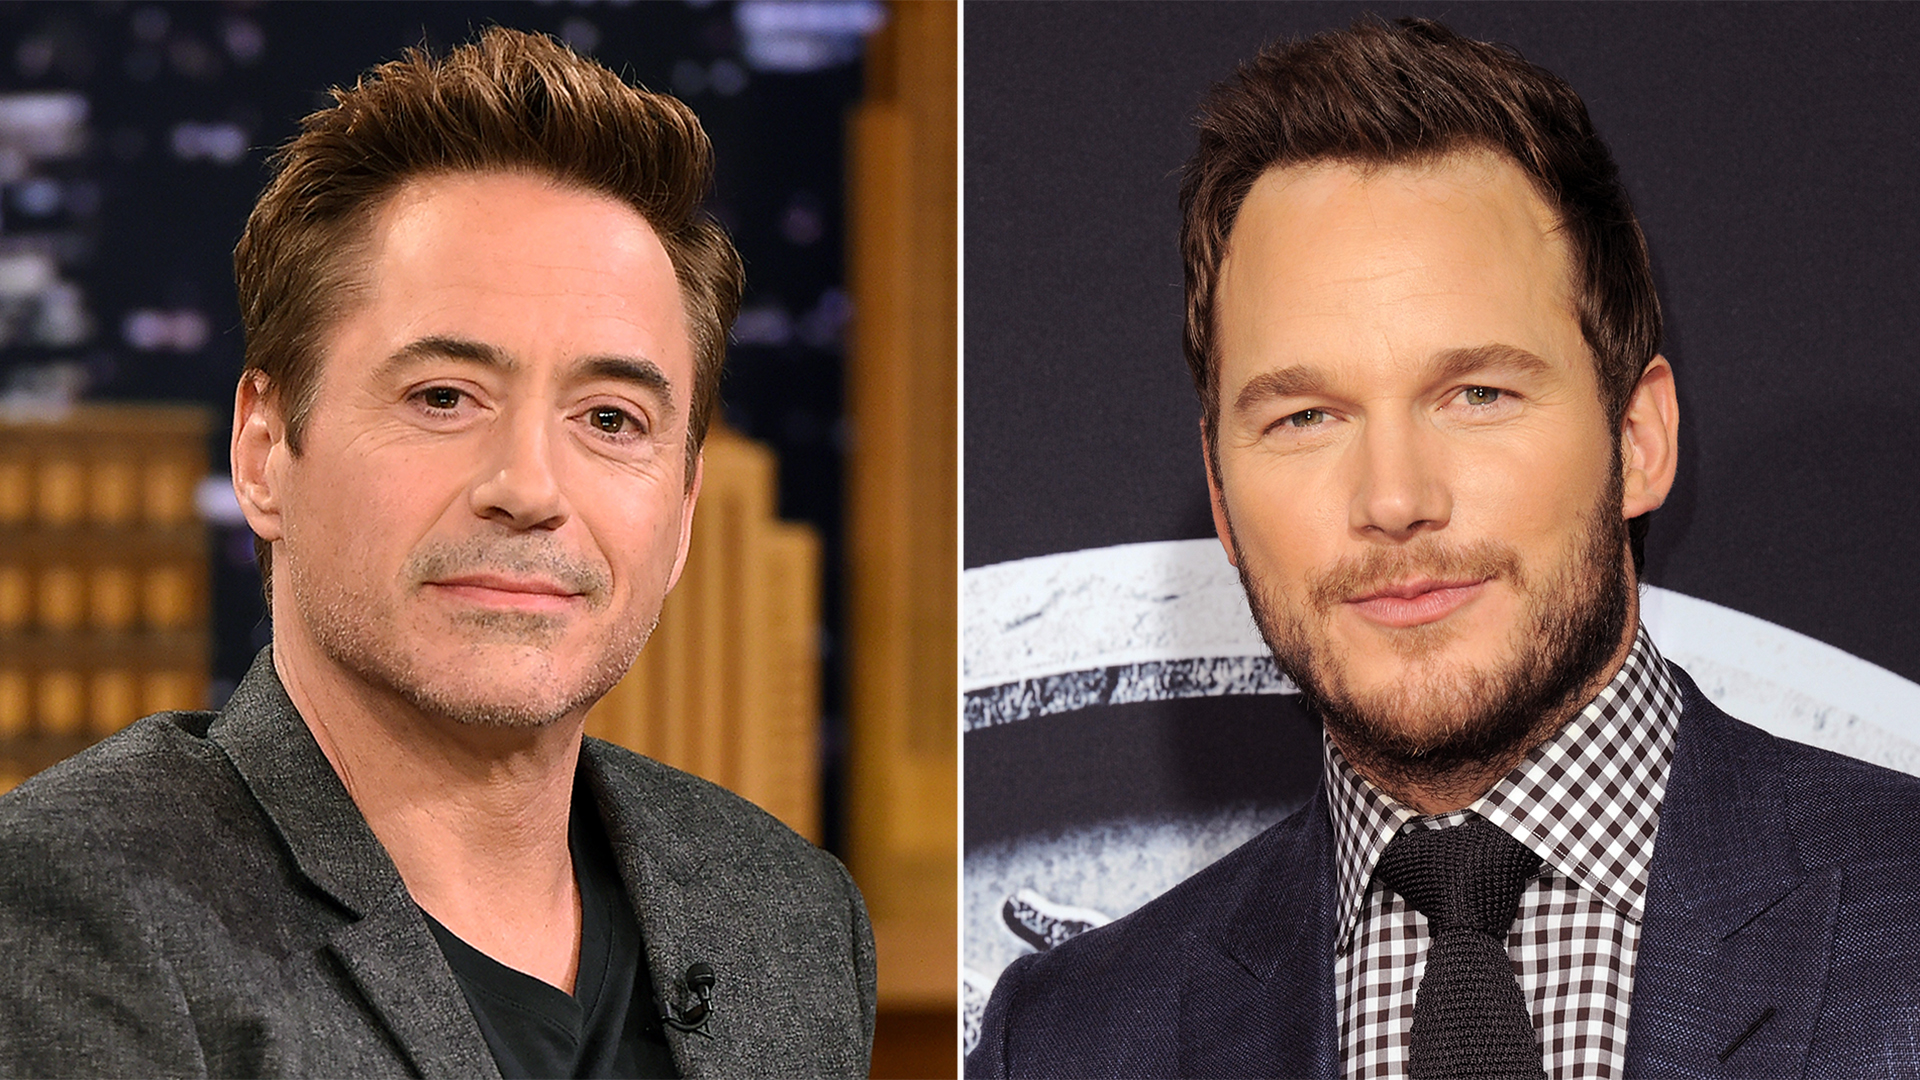 Robert Downey Jr. Sent Chris Pratt The Greatest 'Jurassic World' Meme